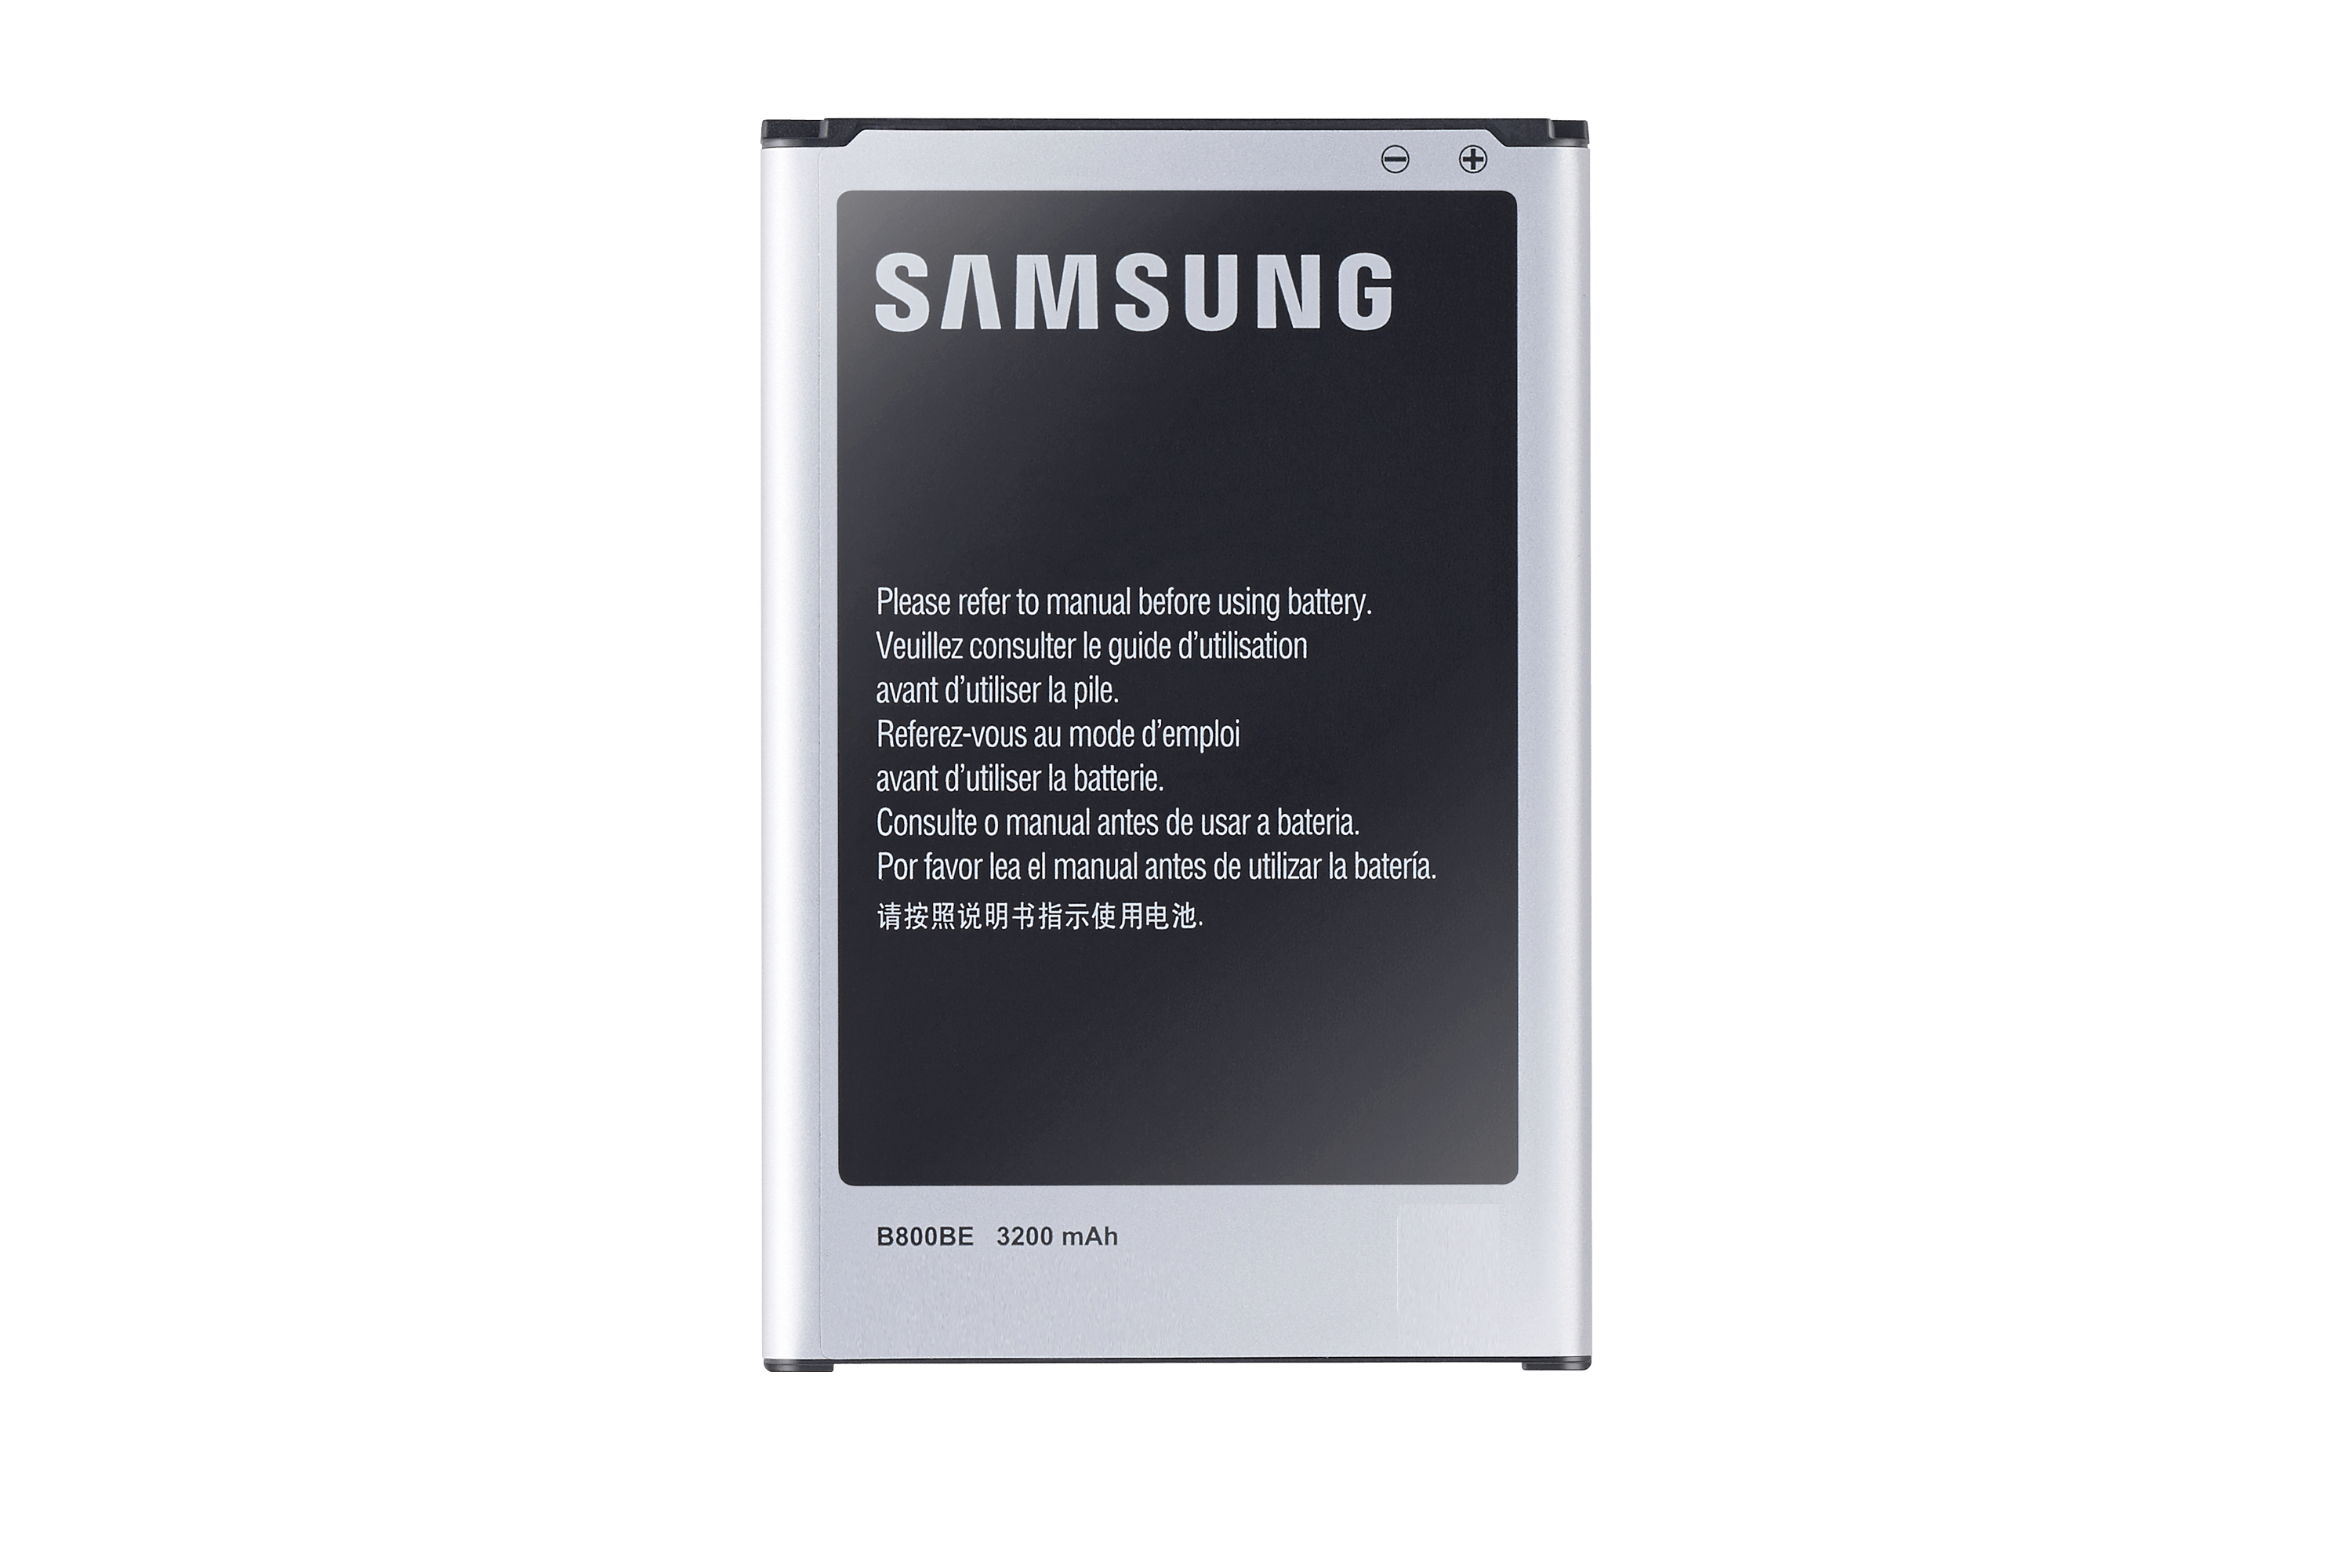 Japan Möbel Galaxy Note 3 Battery 3200mah Lithium Ion Samsung Uk